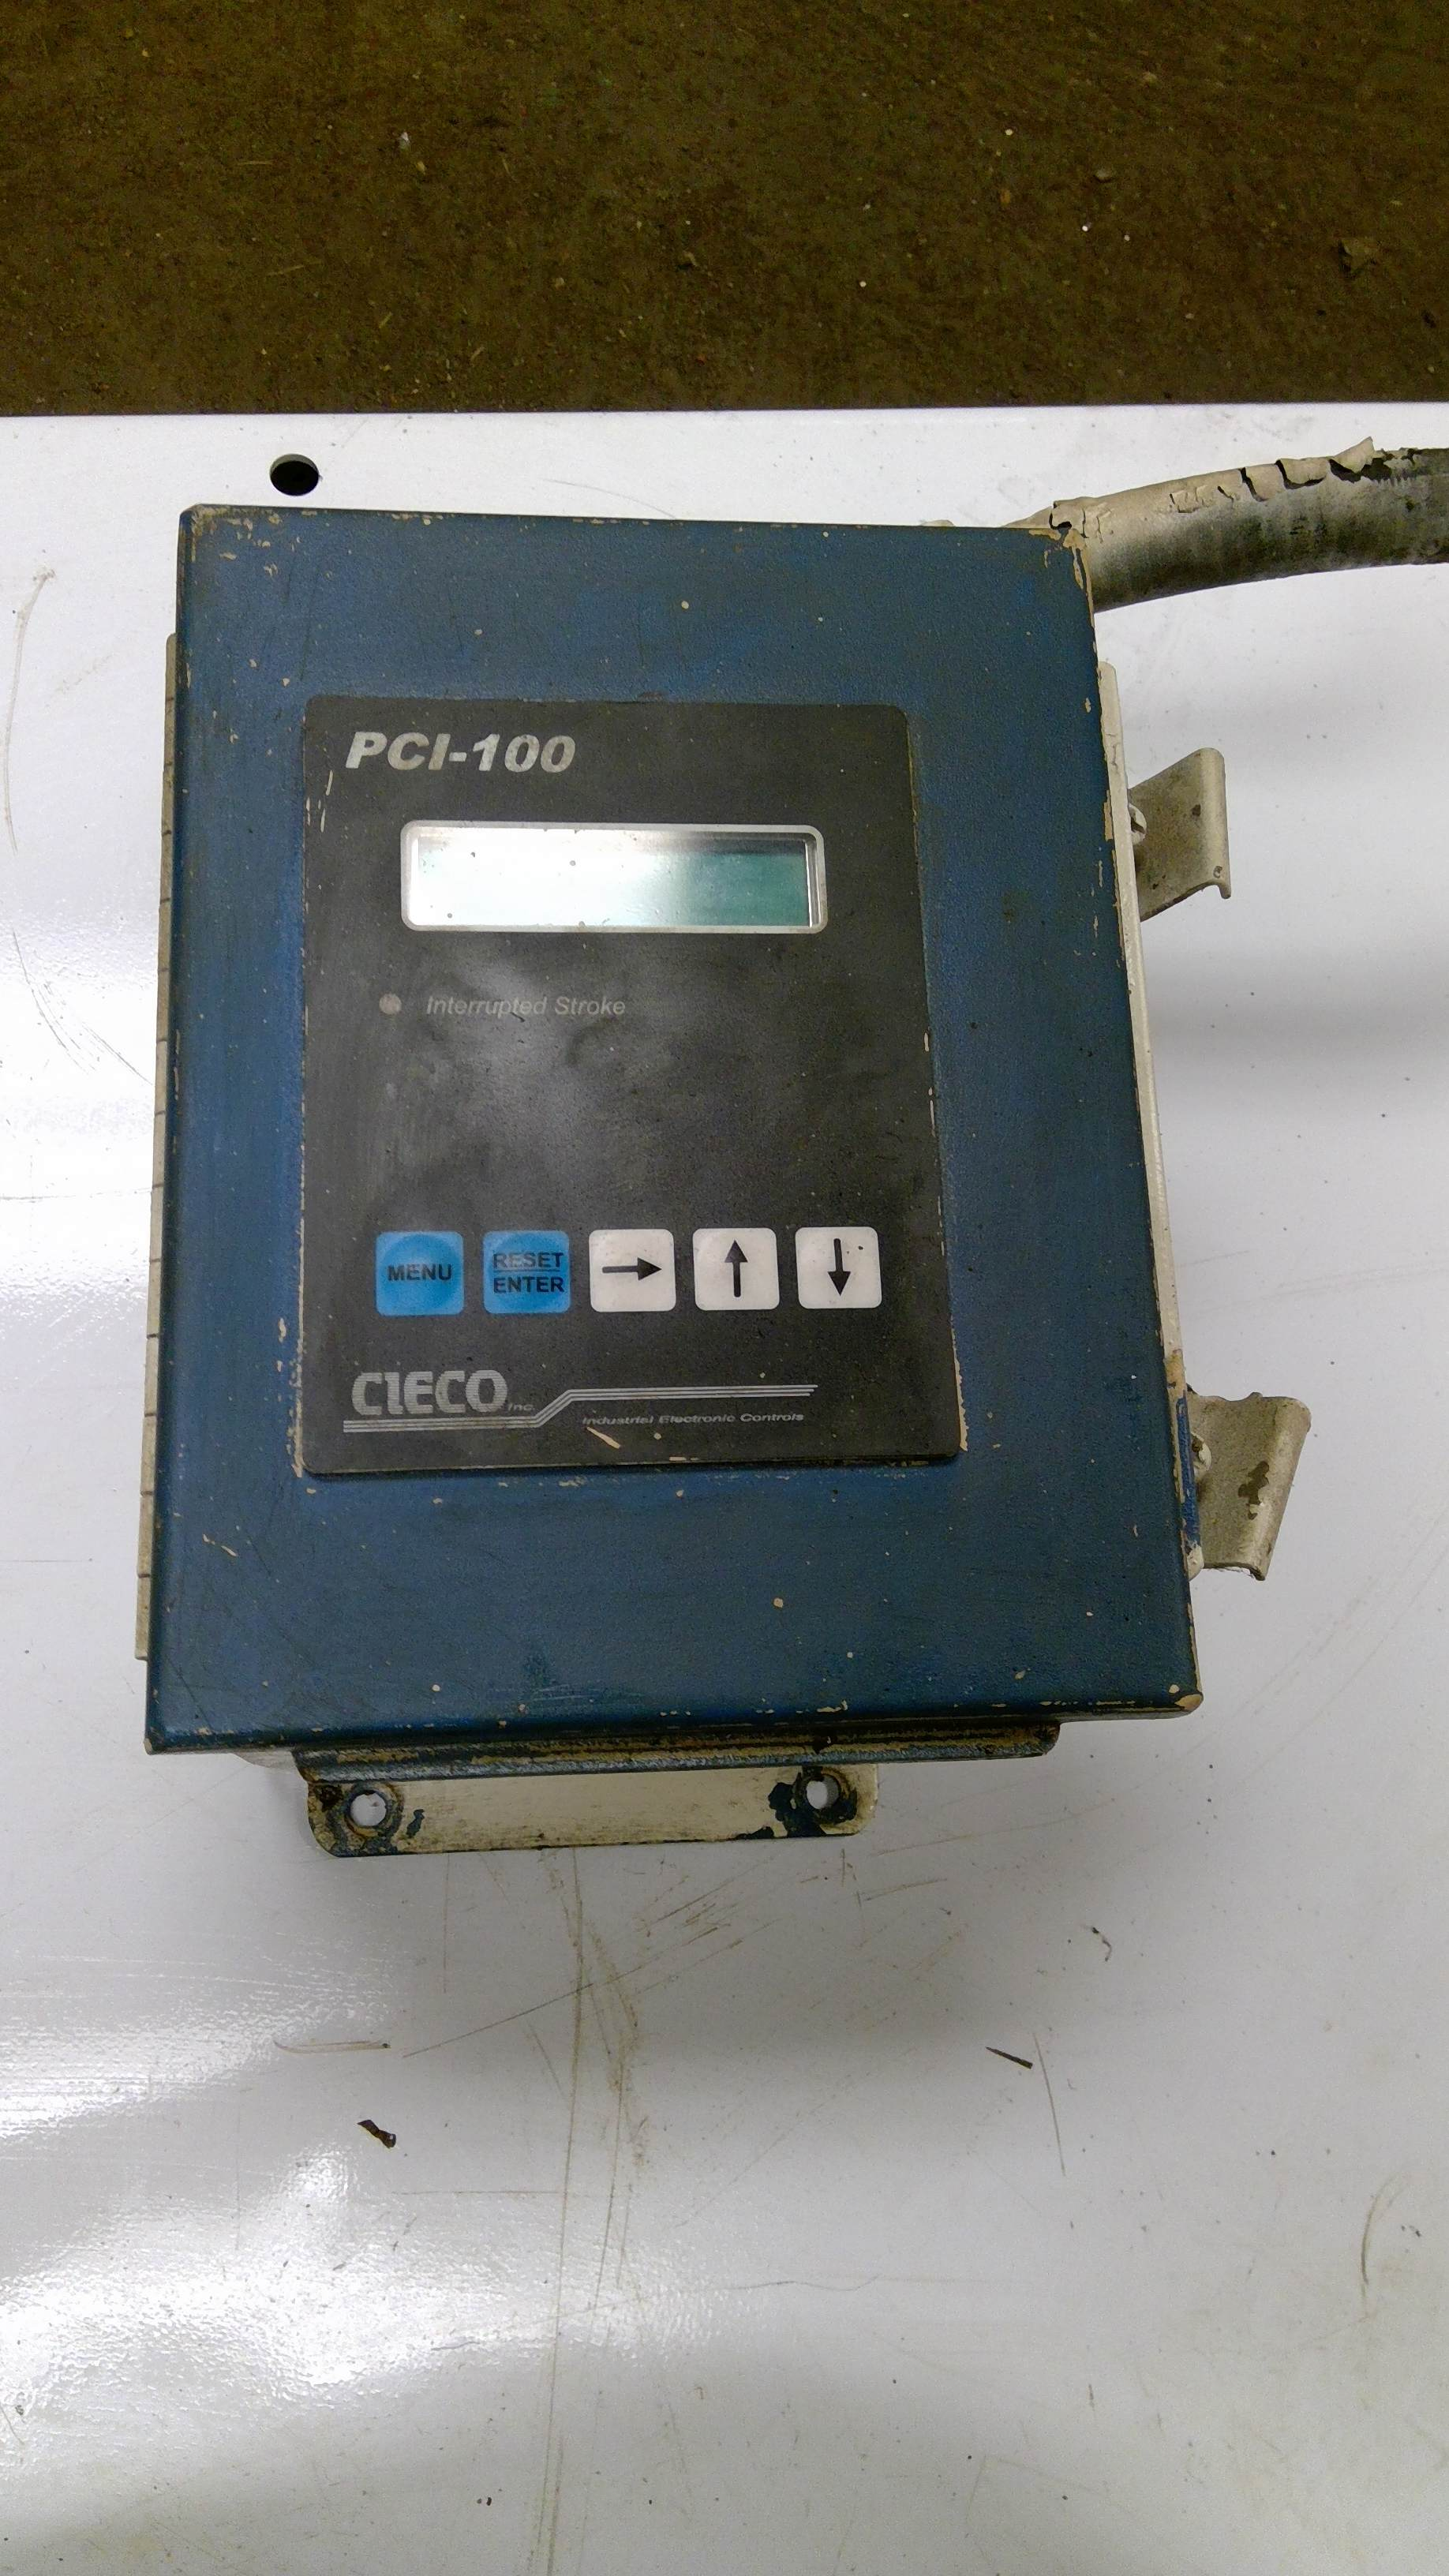 CIECO PCI-100 8 INPUT DIE PROTECTION CONTROLLER